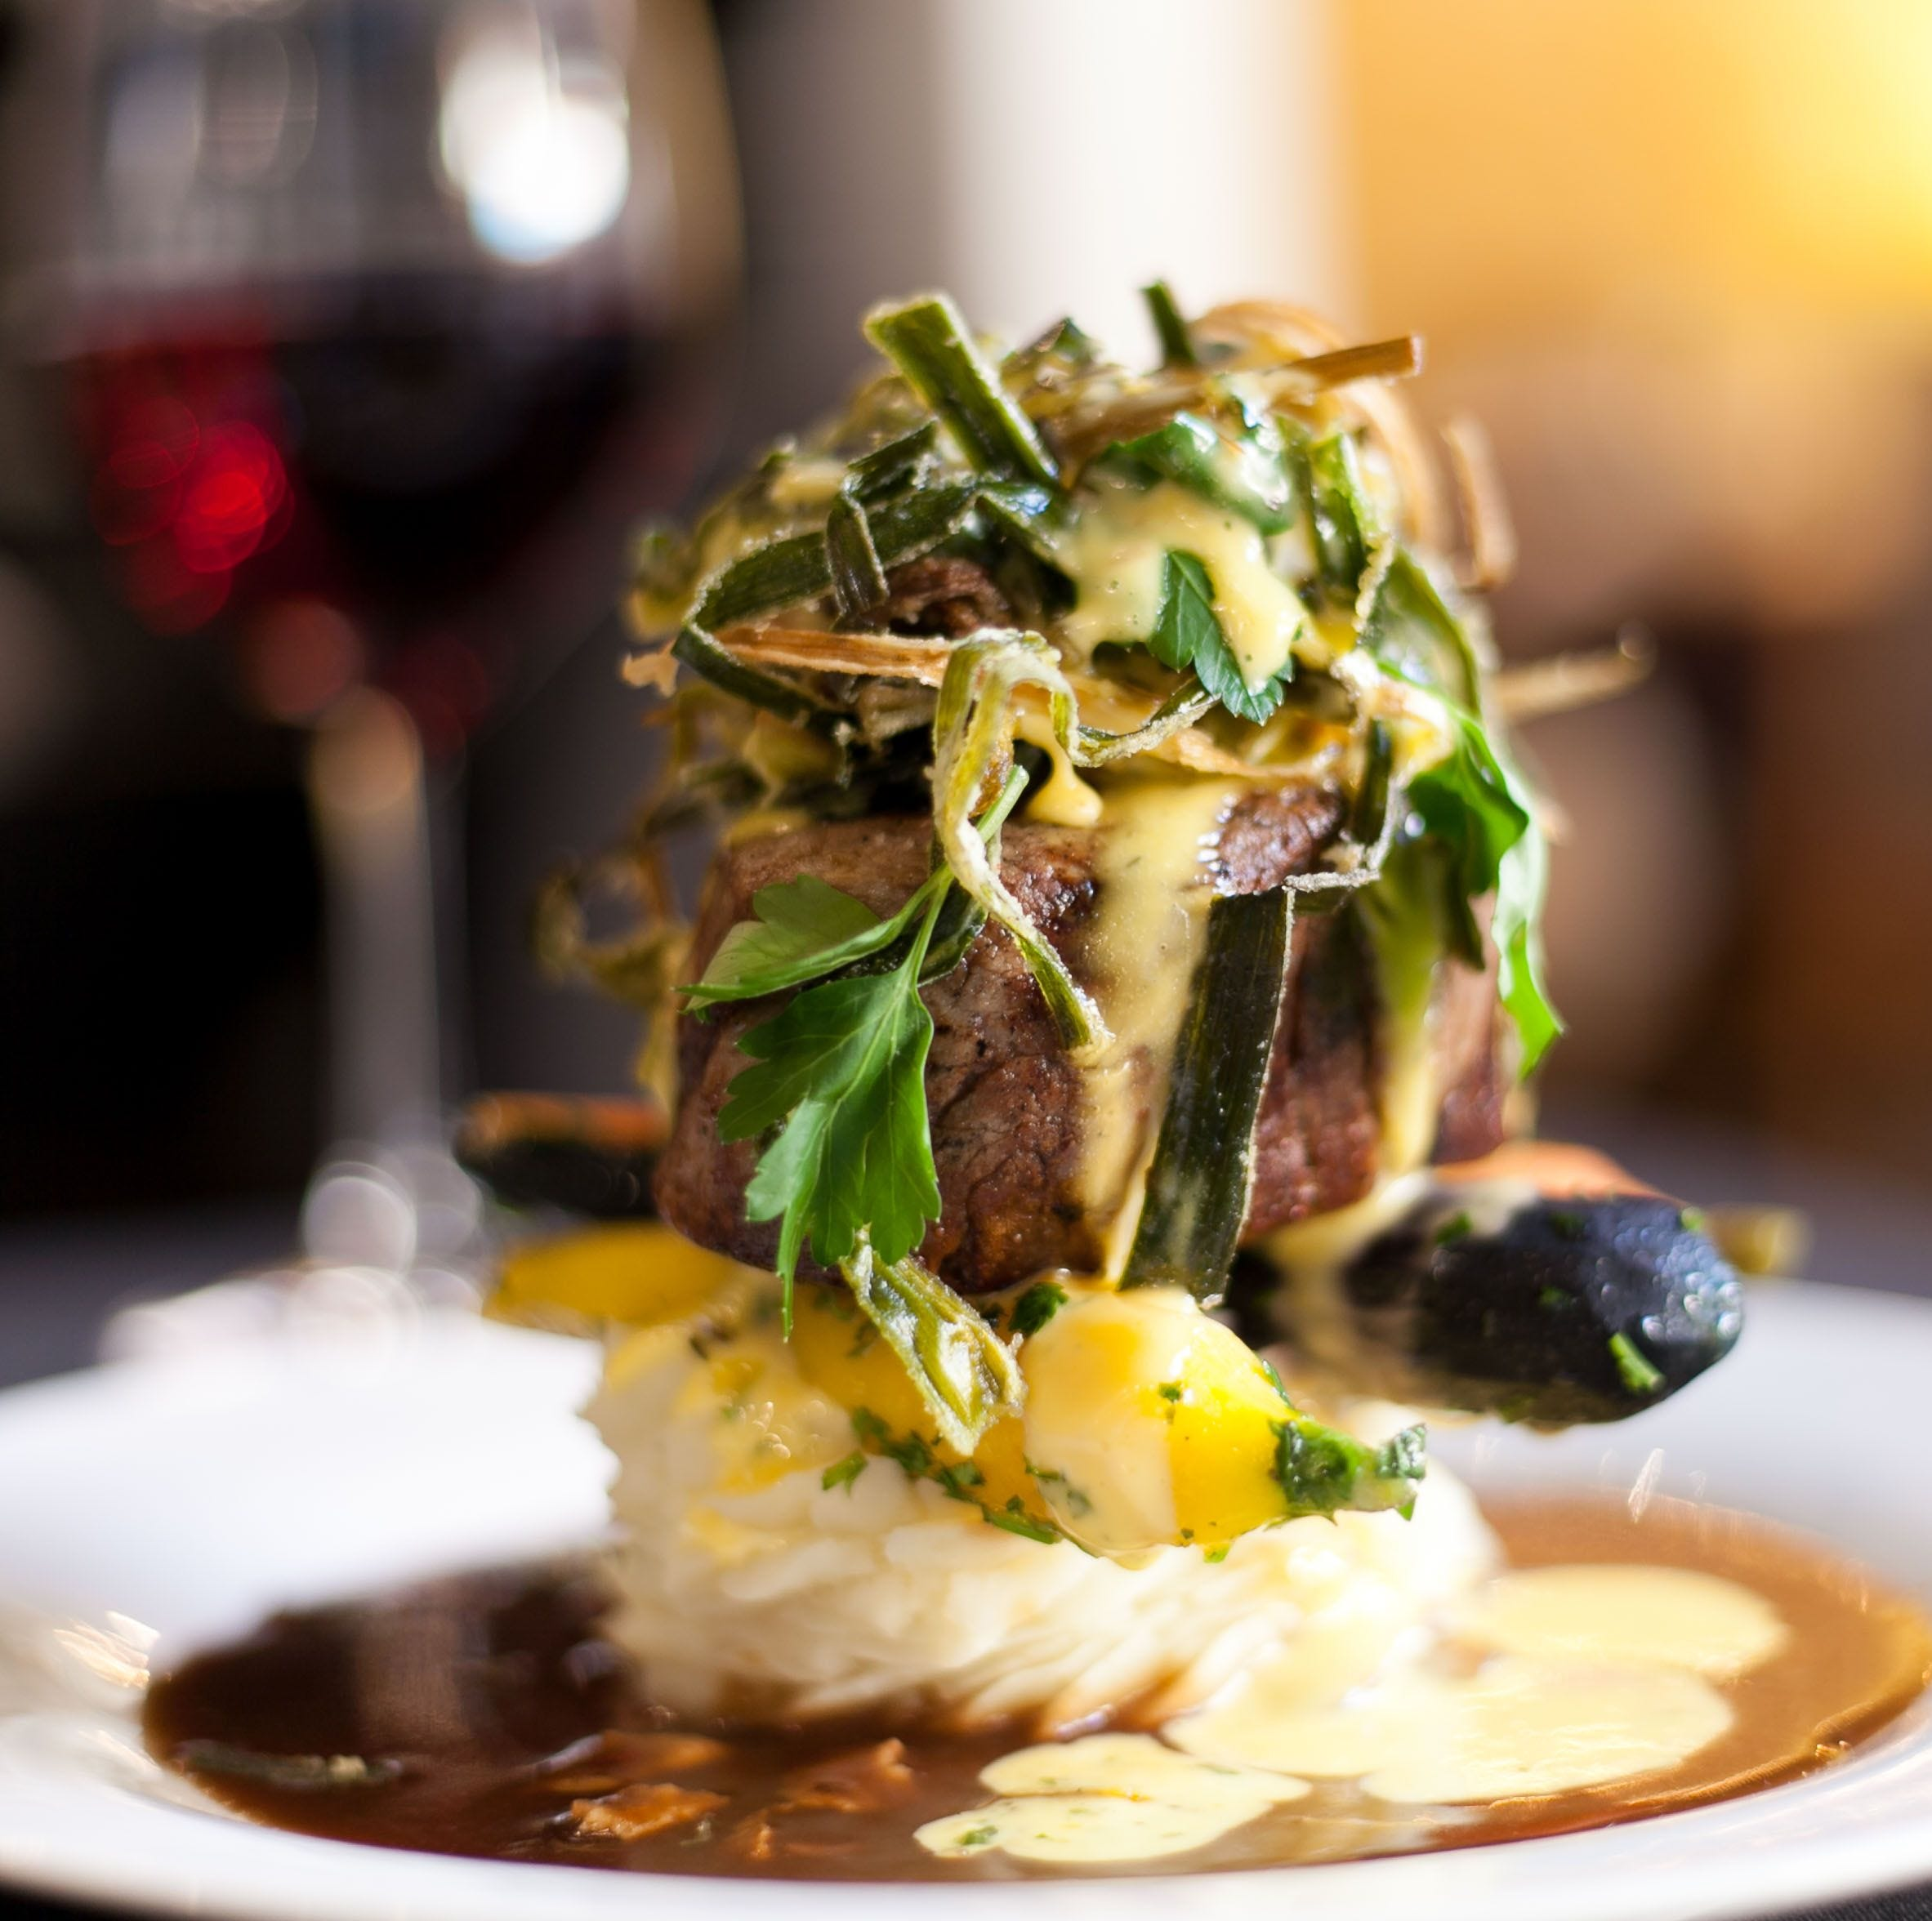 With excellent service and artful food, like this seared prime filet mignon, Cafe' Margaux in Cocoa Village topped the list of favorite high-end restaurants in Brevard.